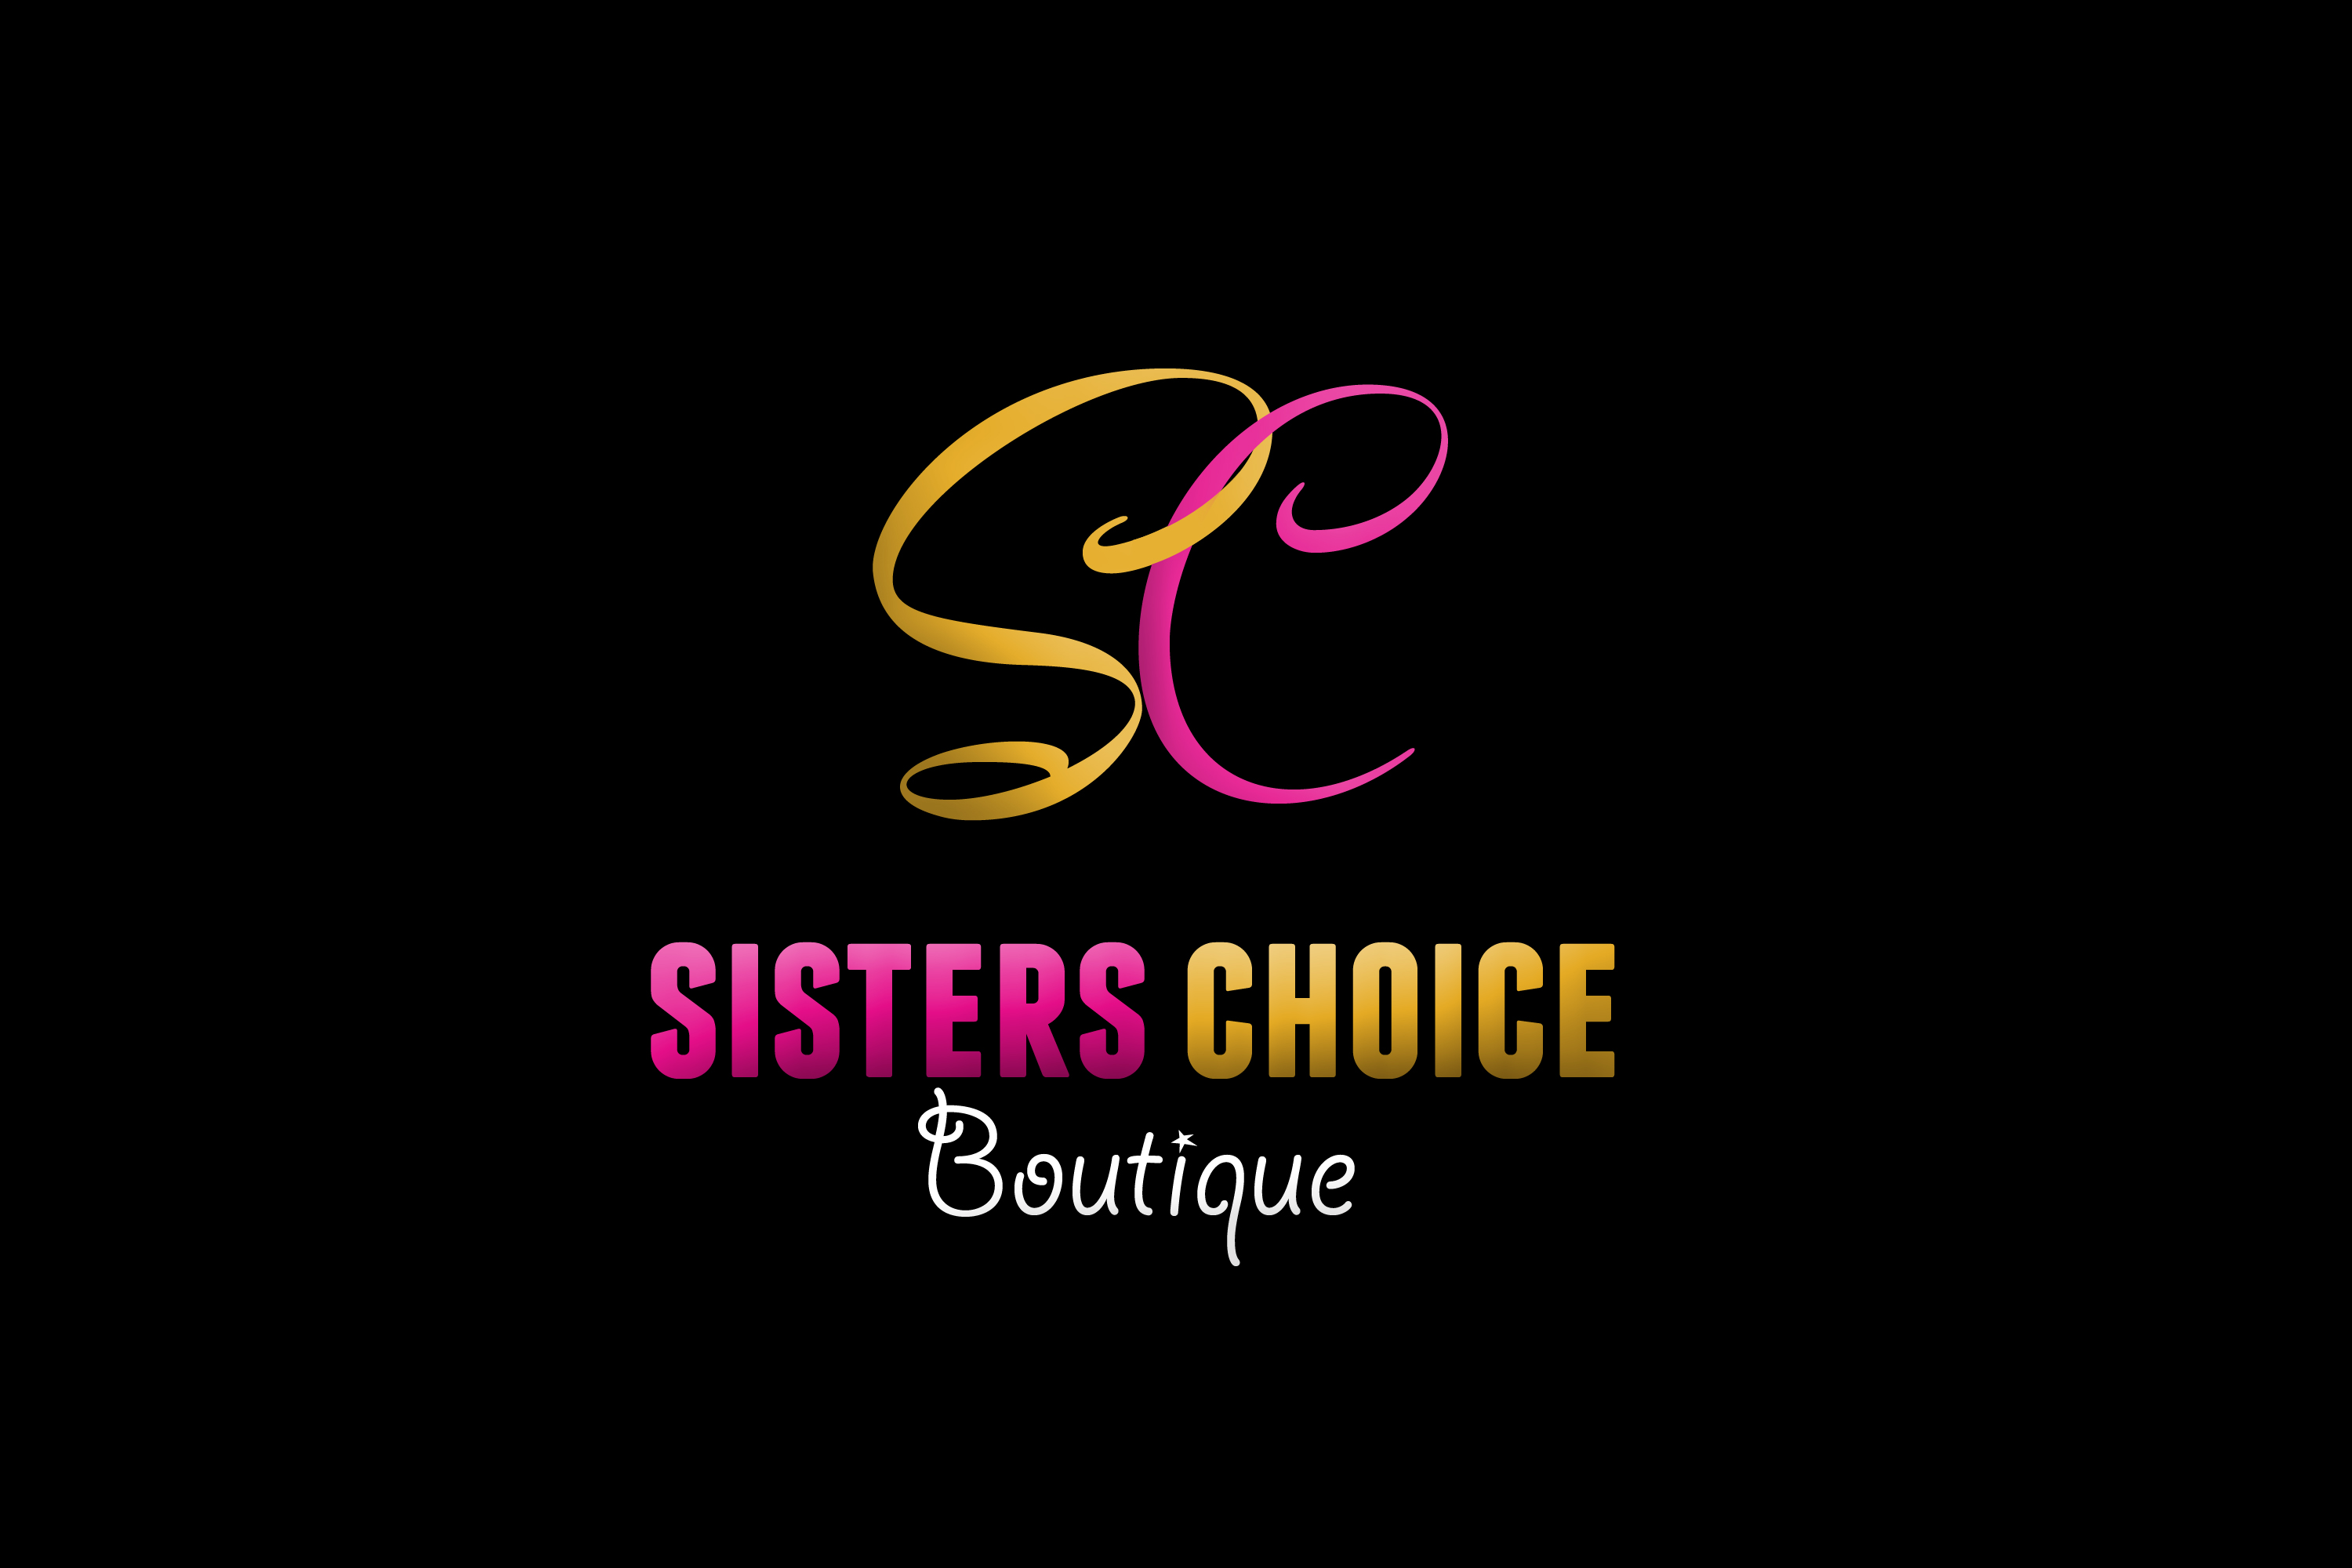 sisters_choice_boutique__logo_copy_1